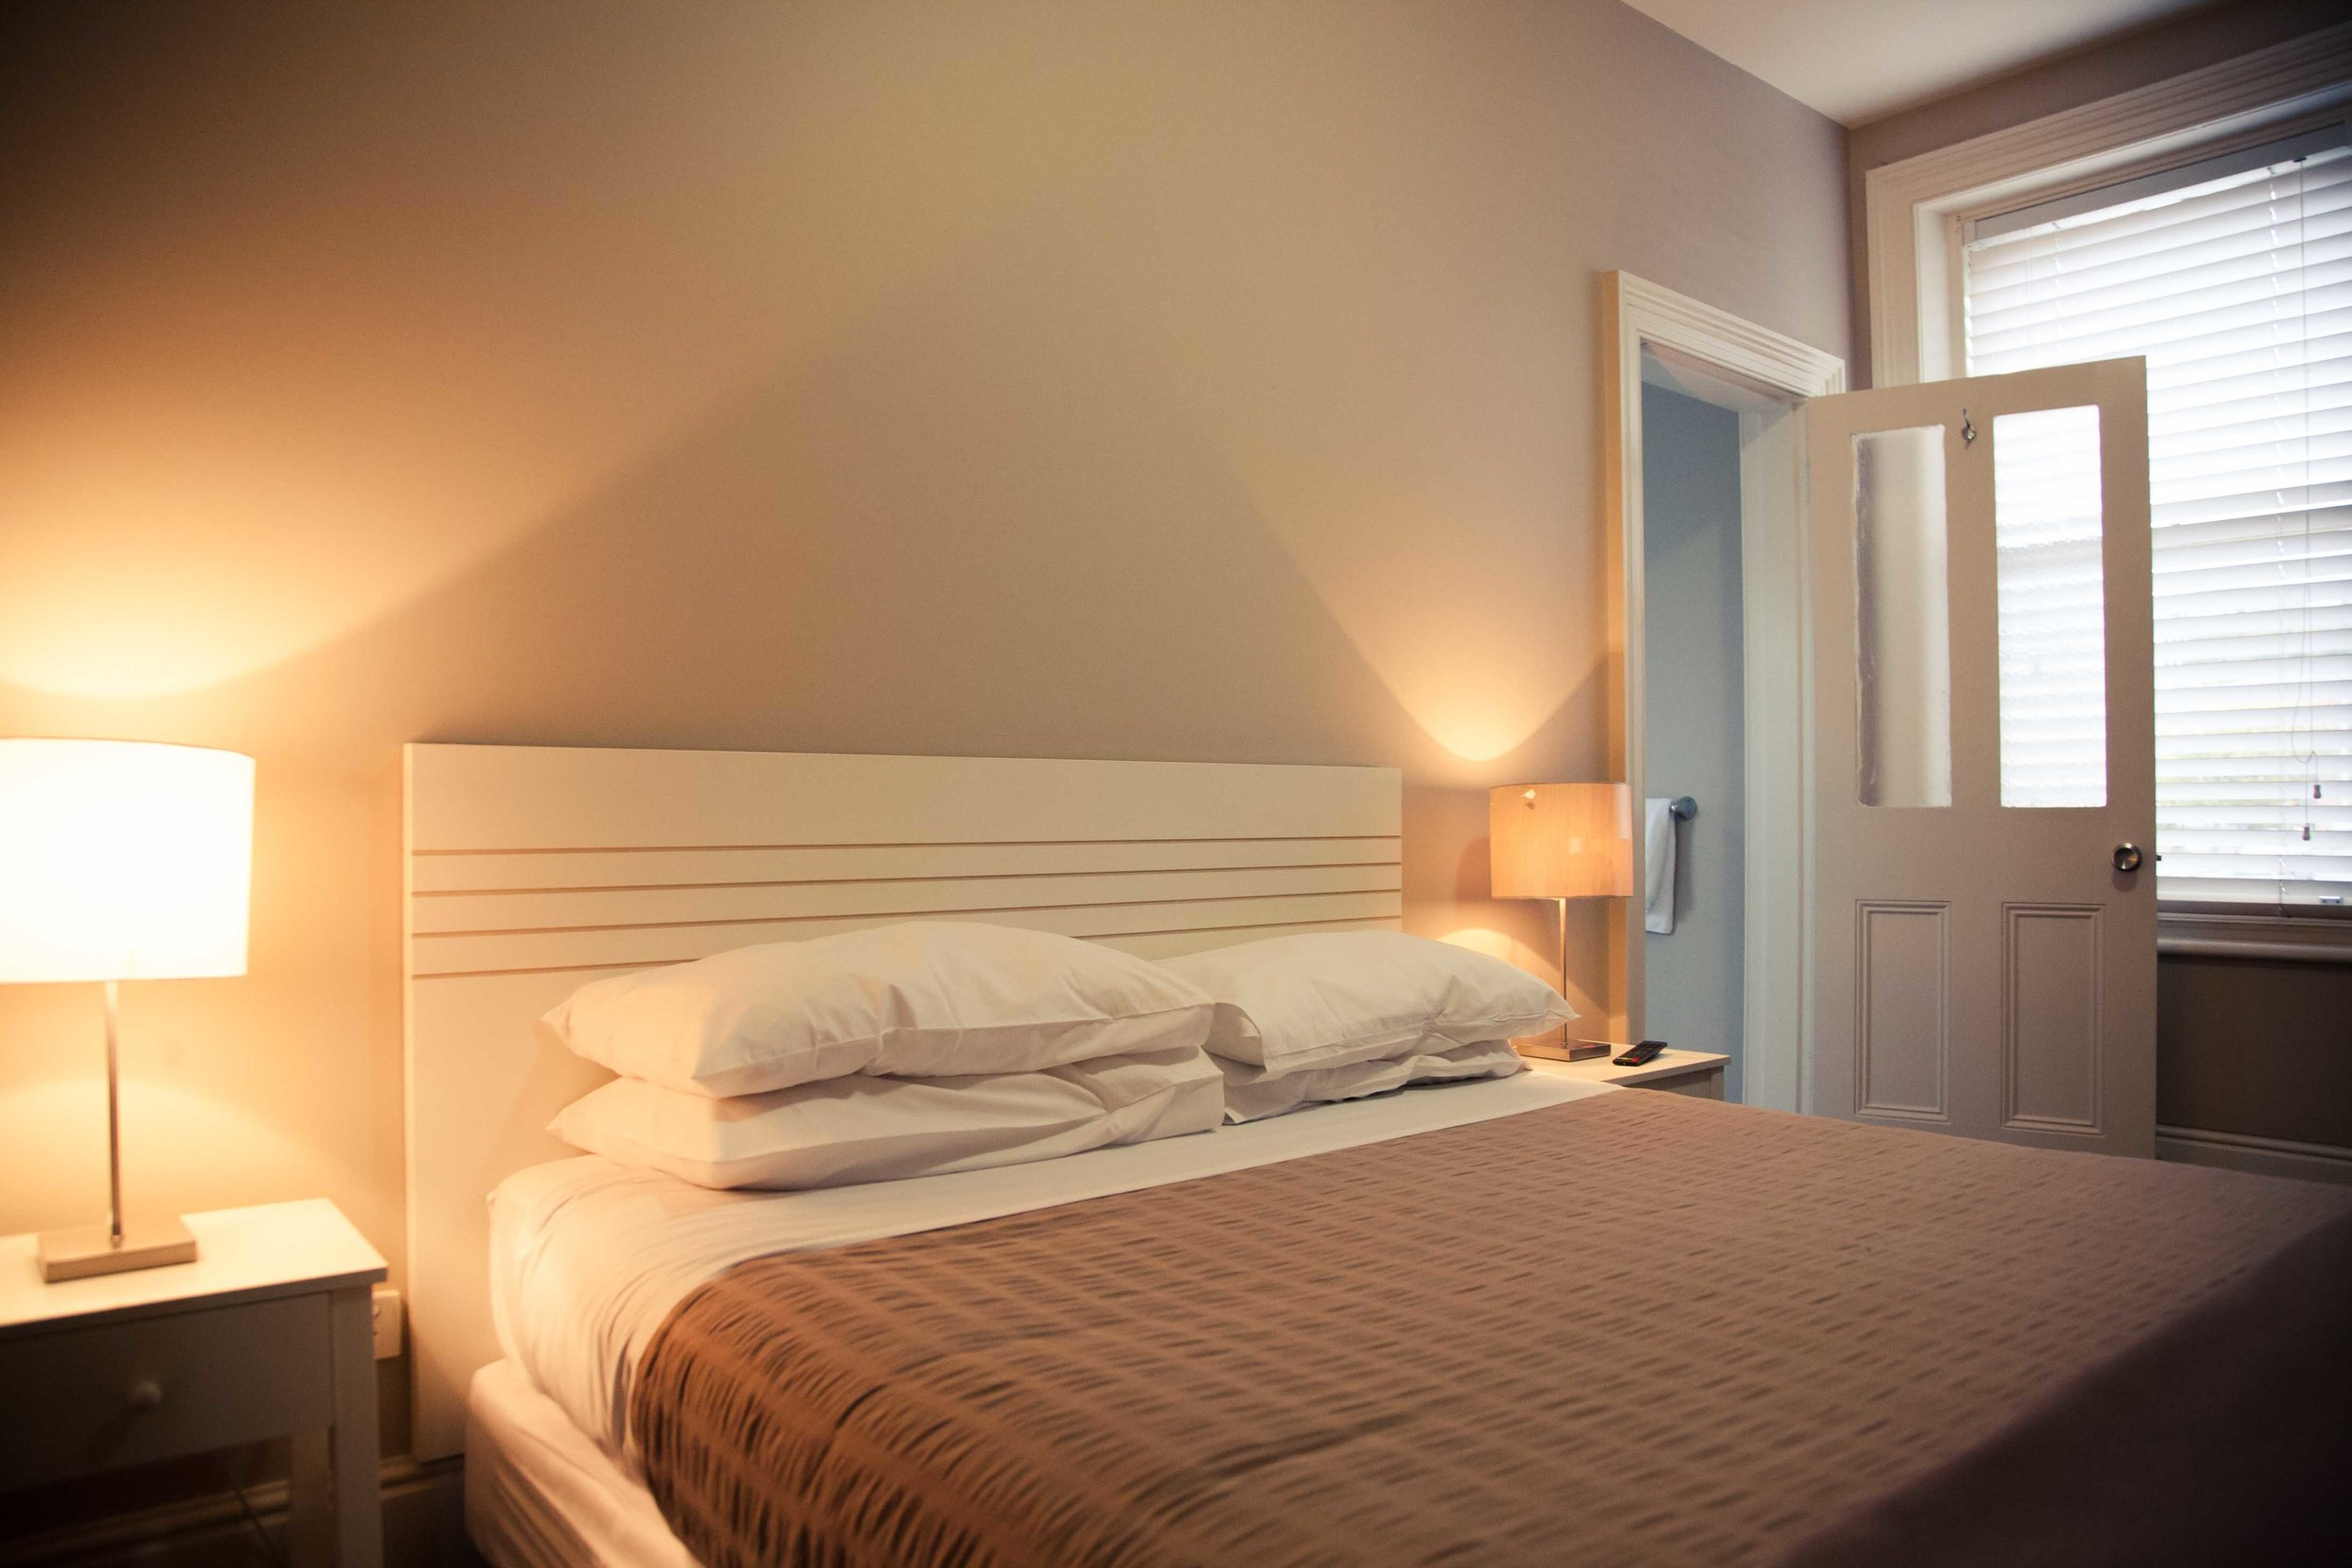 AVAILABLE ROOM TYPES - Queen room with ensuiteQueen room with private bathroomSingle room with separate private bathroom